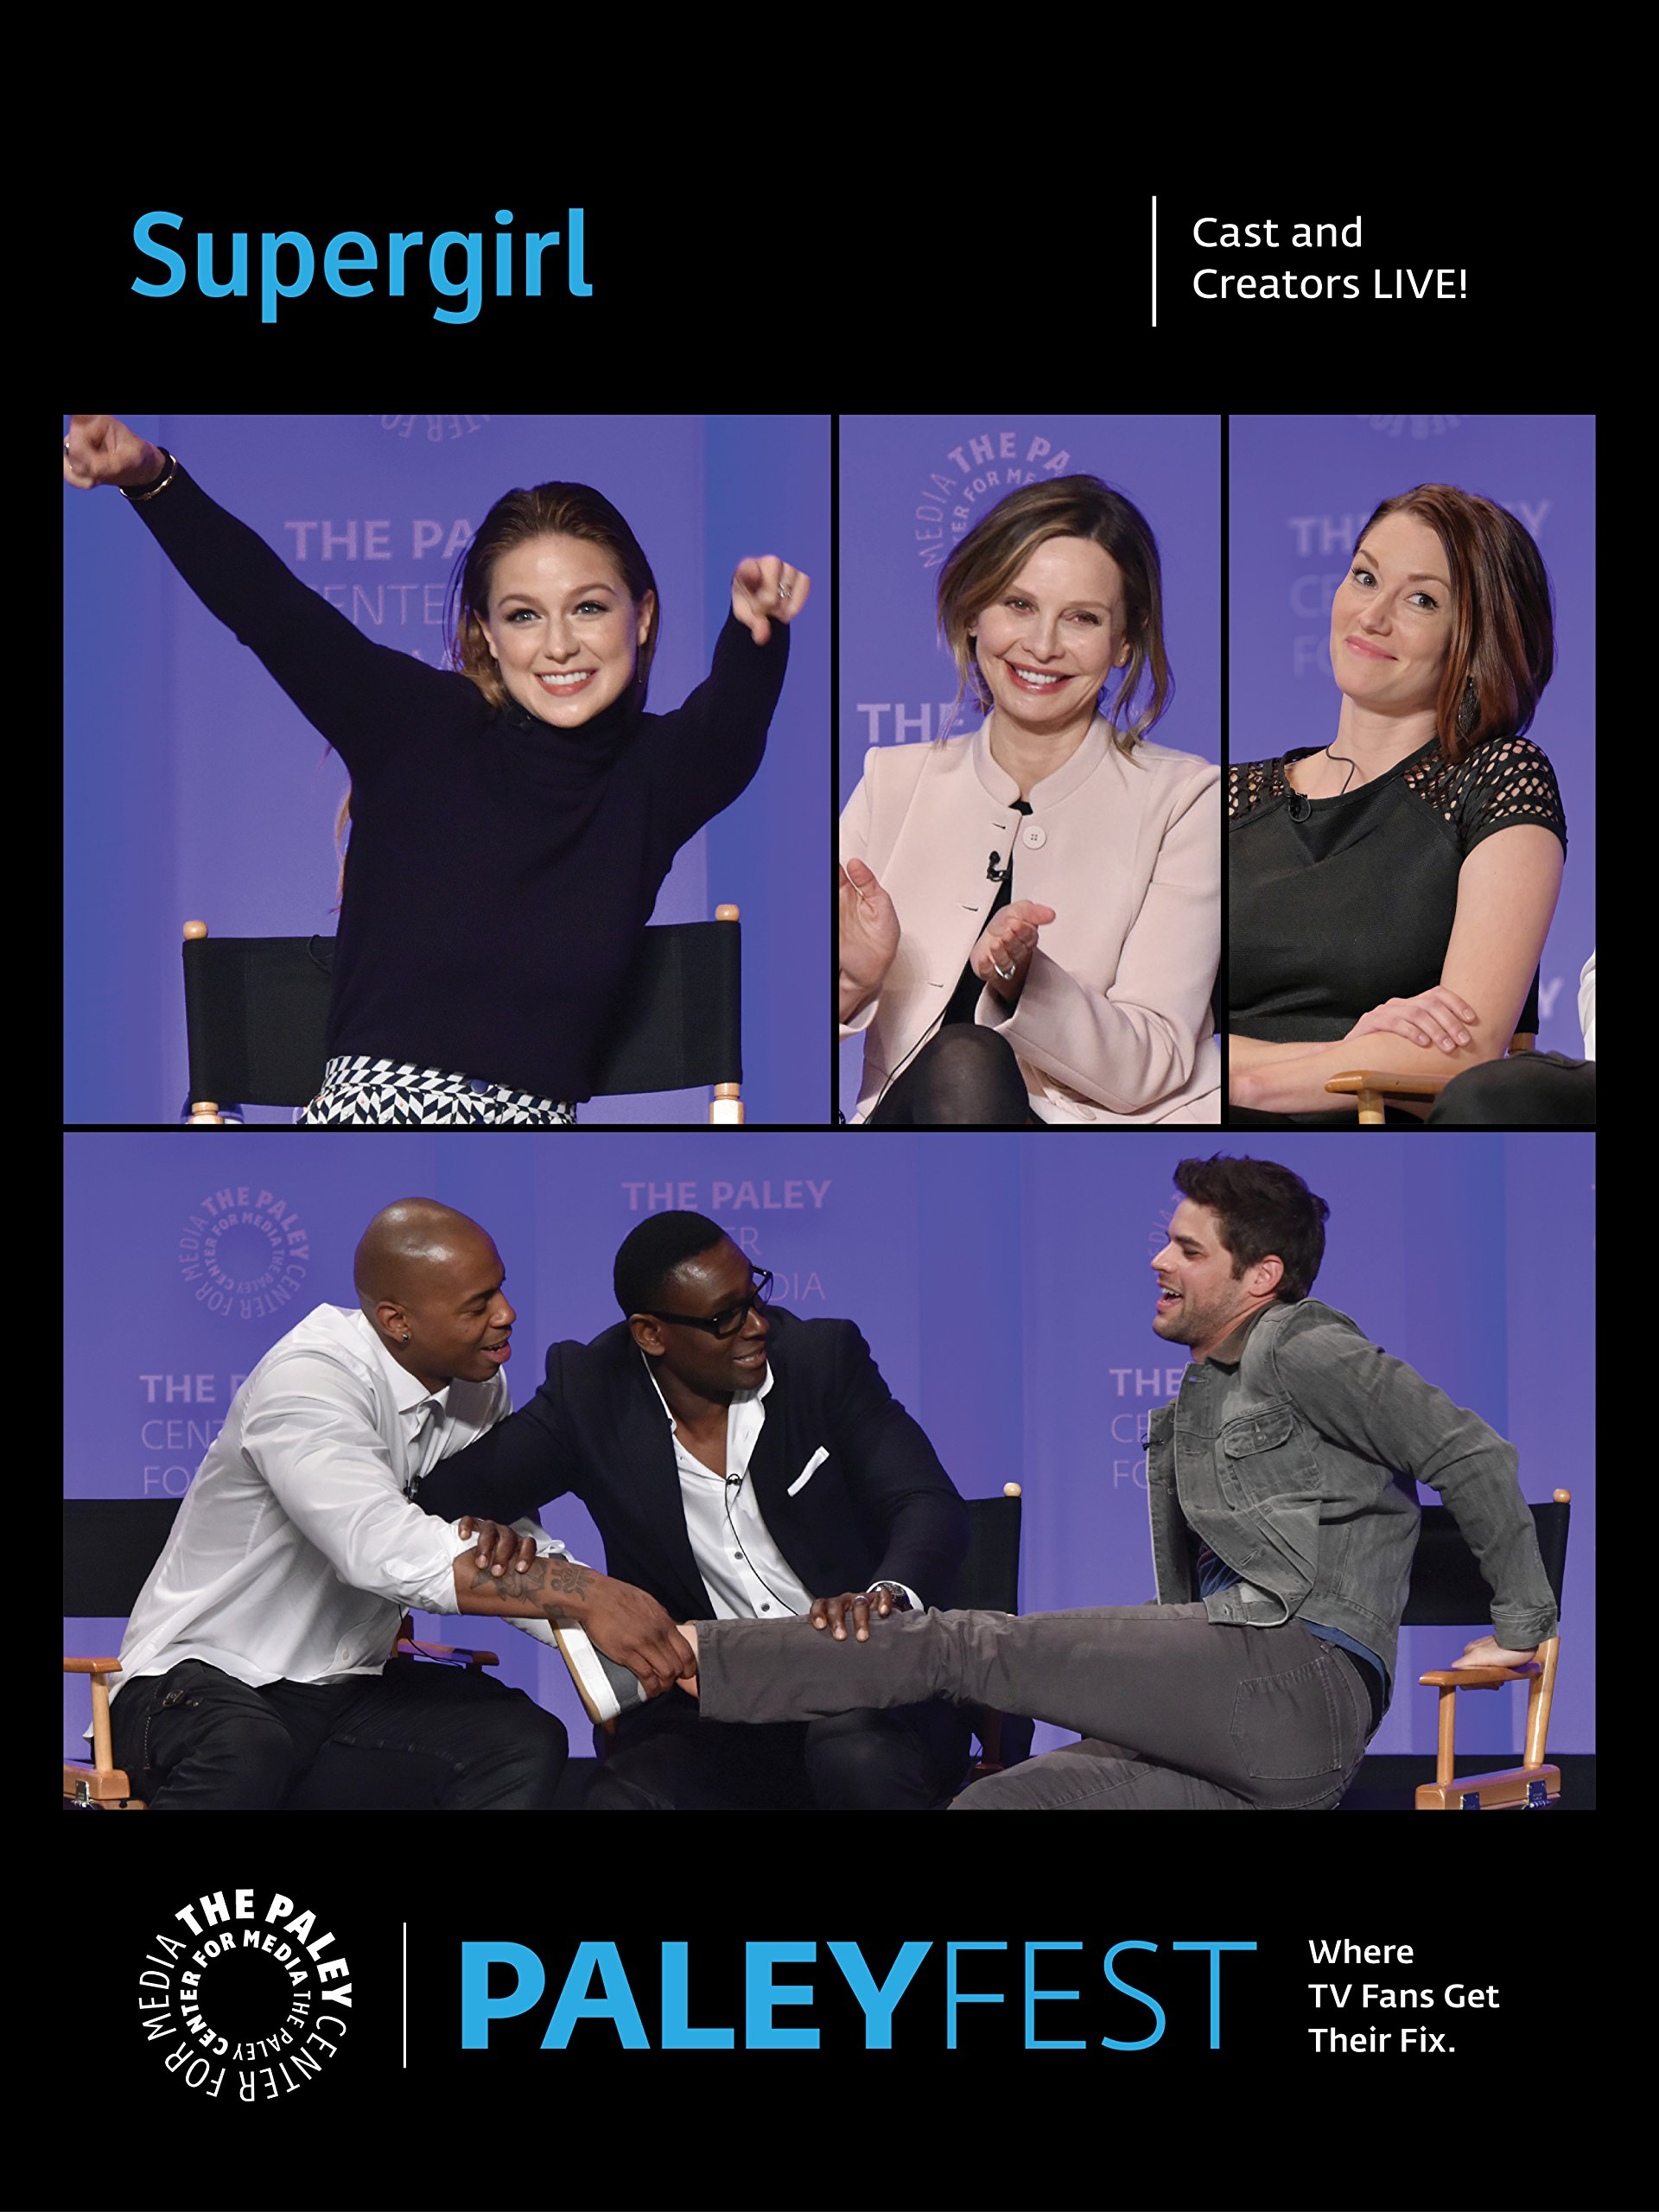 Supergirl: Cast and Creators PaleyFest